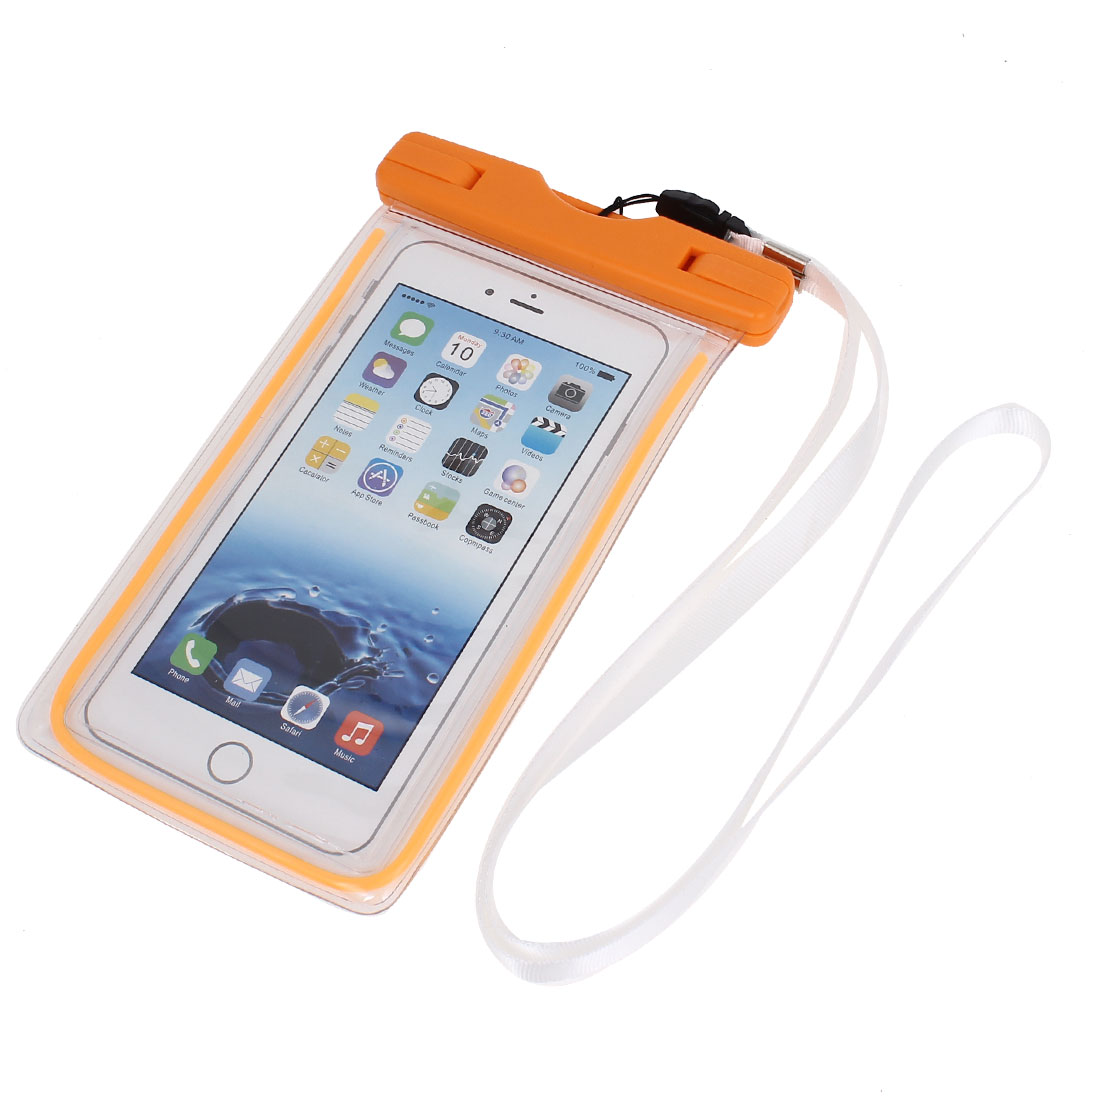 Waterproof Luminous Bag Holder Pouch Orange for iPhone 6 Plus w Neck Strap